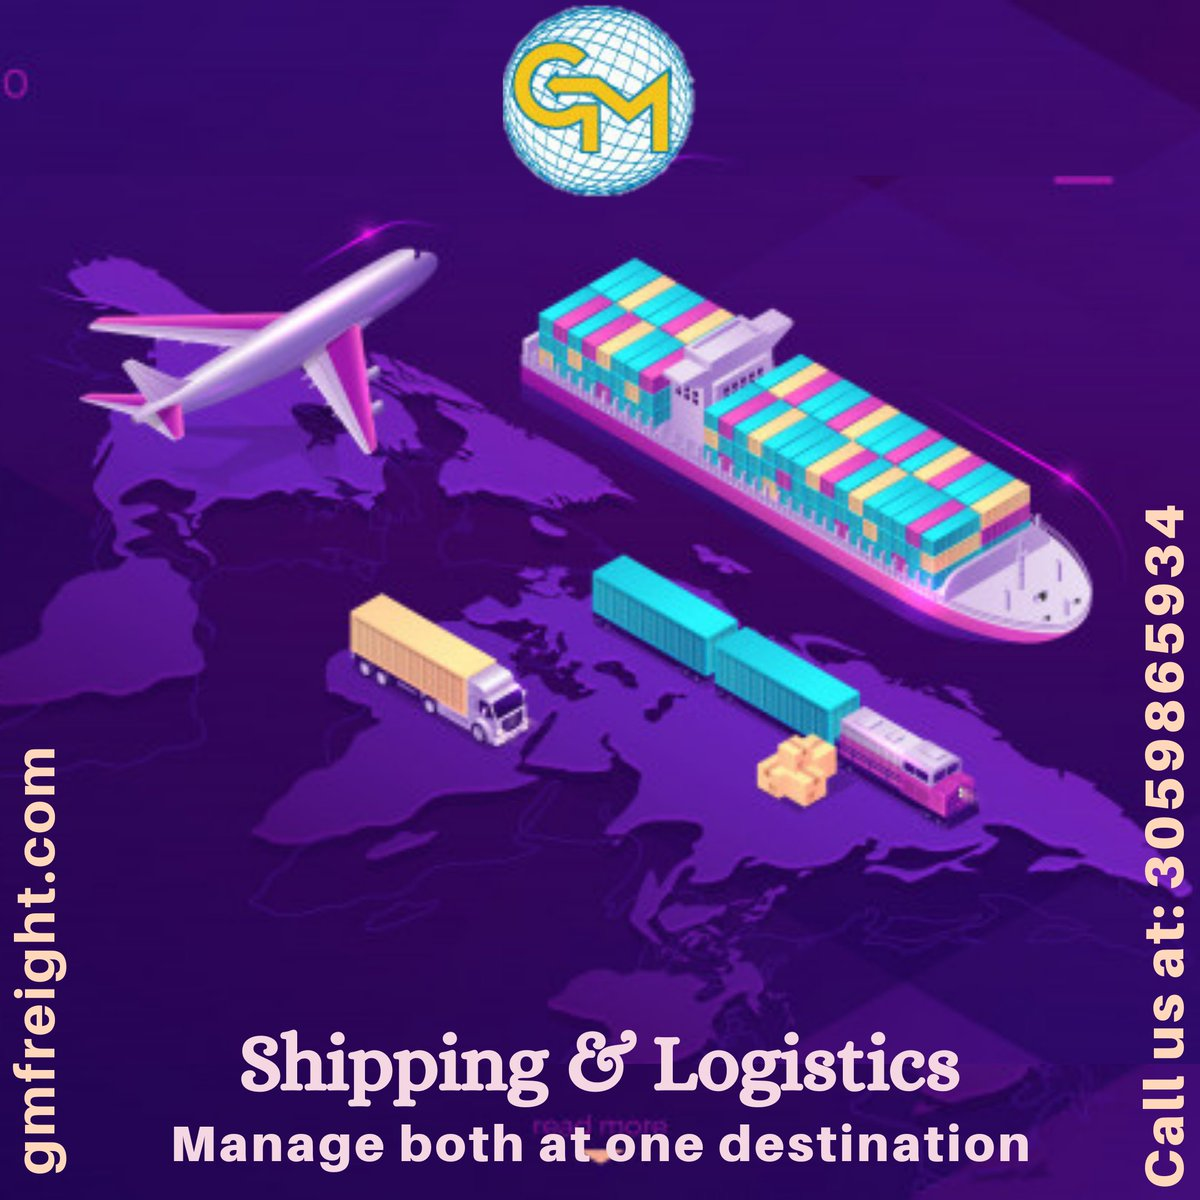 Now get your shipping and logistics needs fulfilled at one destination. We offer reliable, efficient and affordable freight services.  #freight #logistics #trucking #cargo #transportation #shipping #trucks #transport #supplychain #fr #train #truckdriver #graffiti #freightbroker https://t.co/4JvGhm6bt8